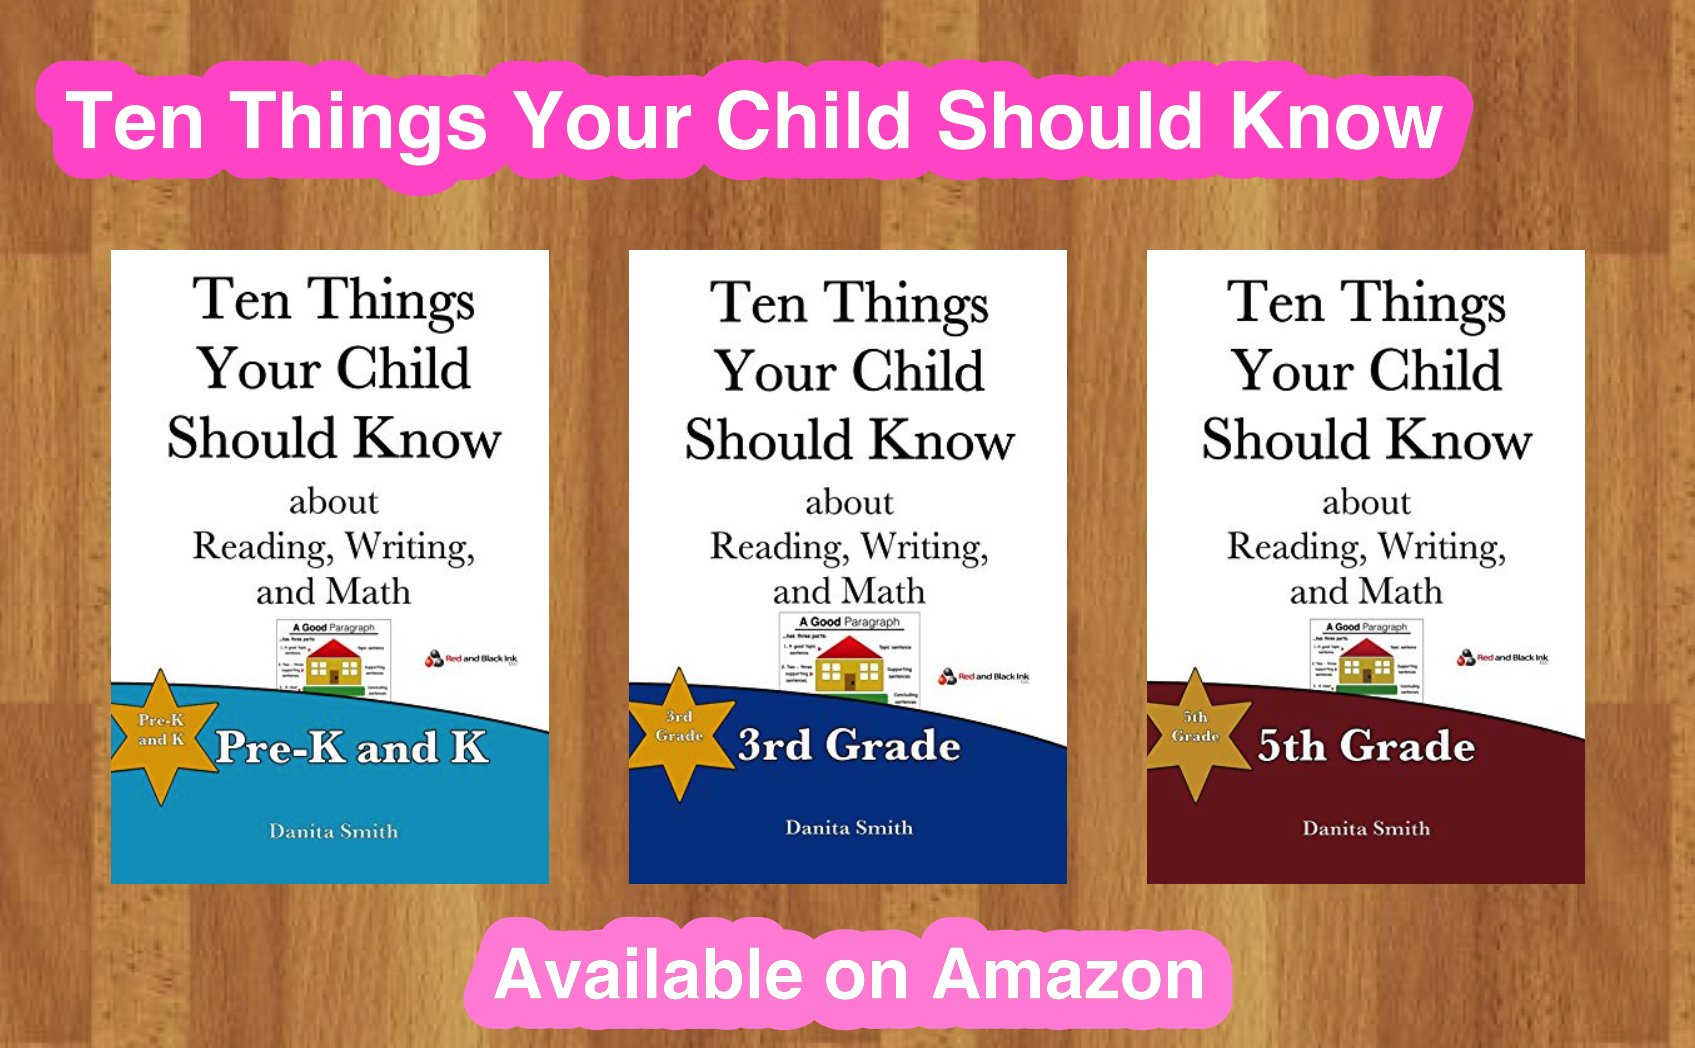 Our educational books are available on Amazon - Stories about Black History, Ten Things Your Child Should Know and more!